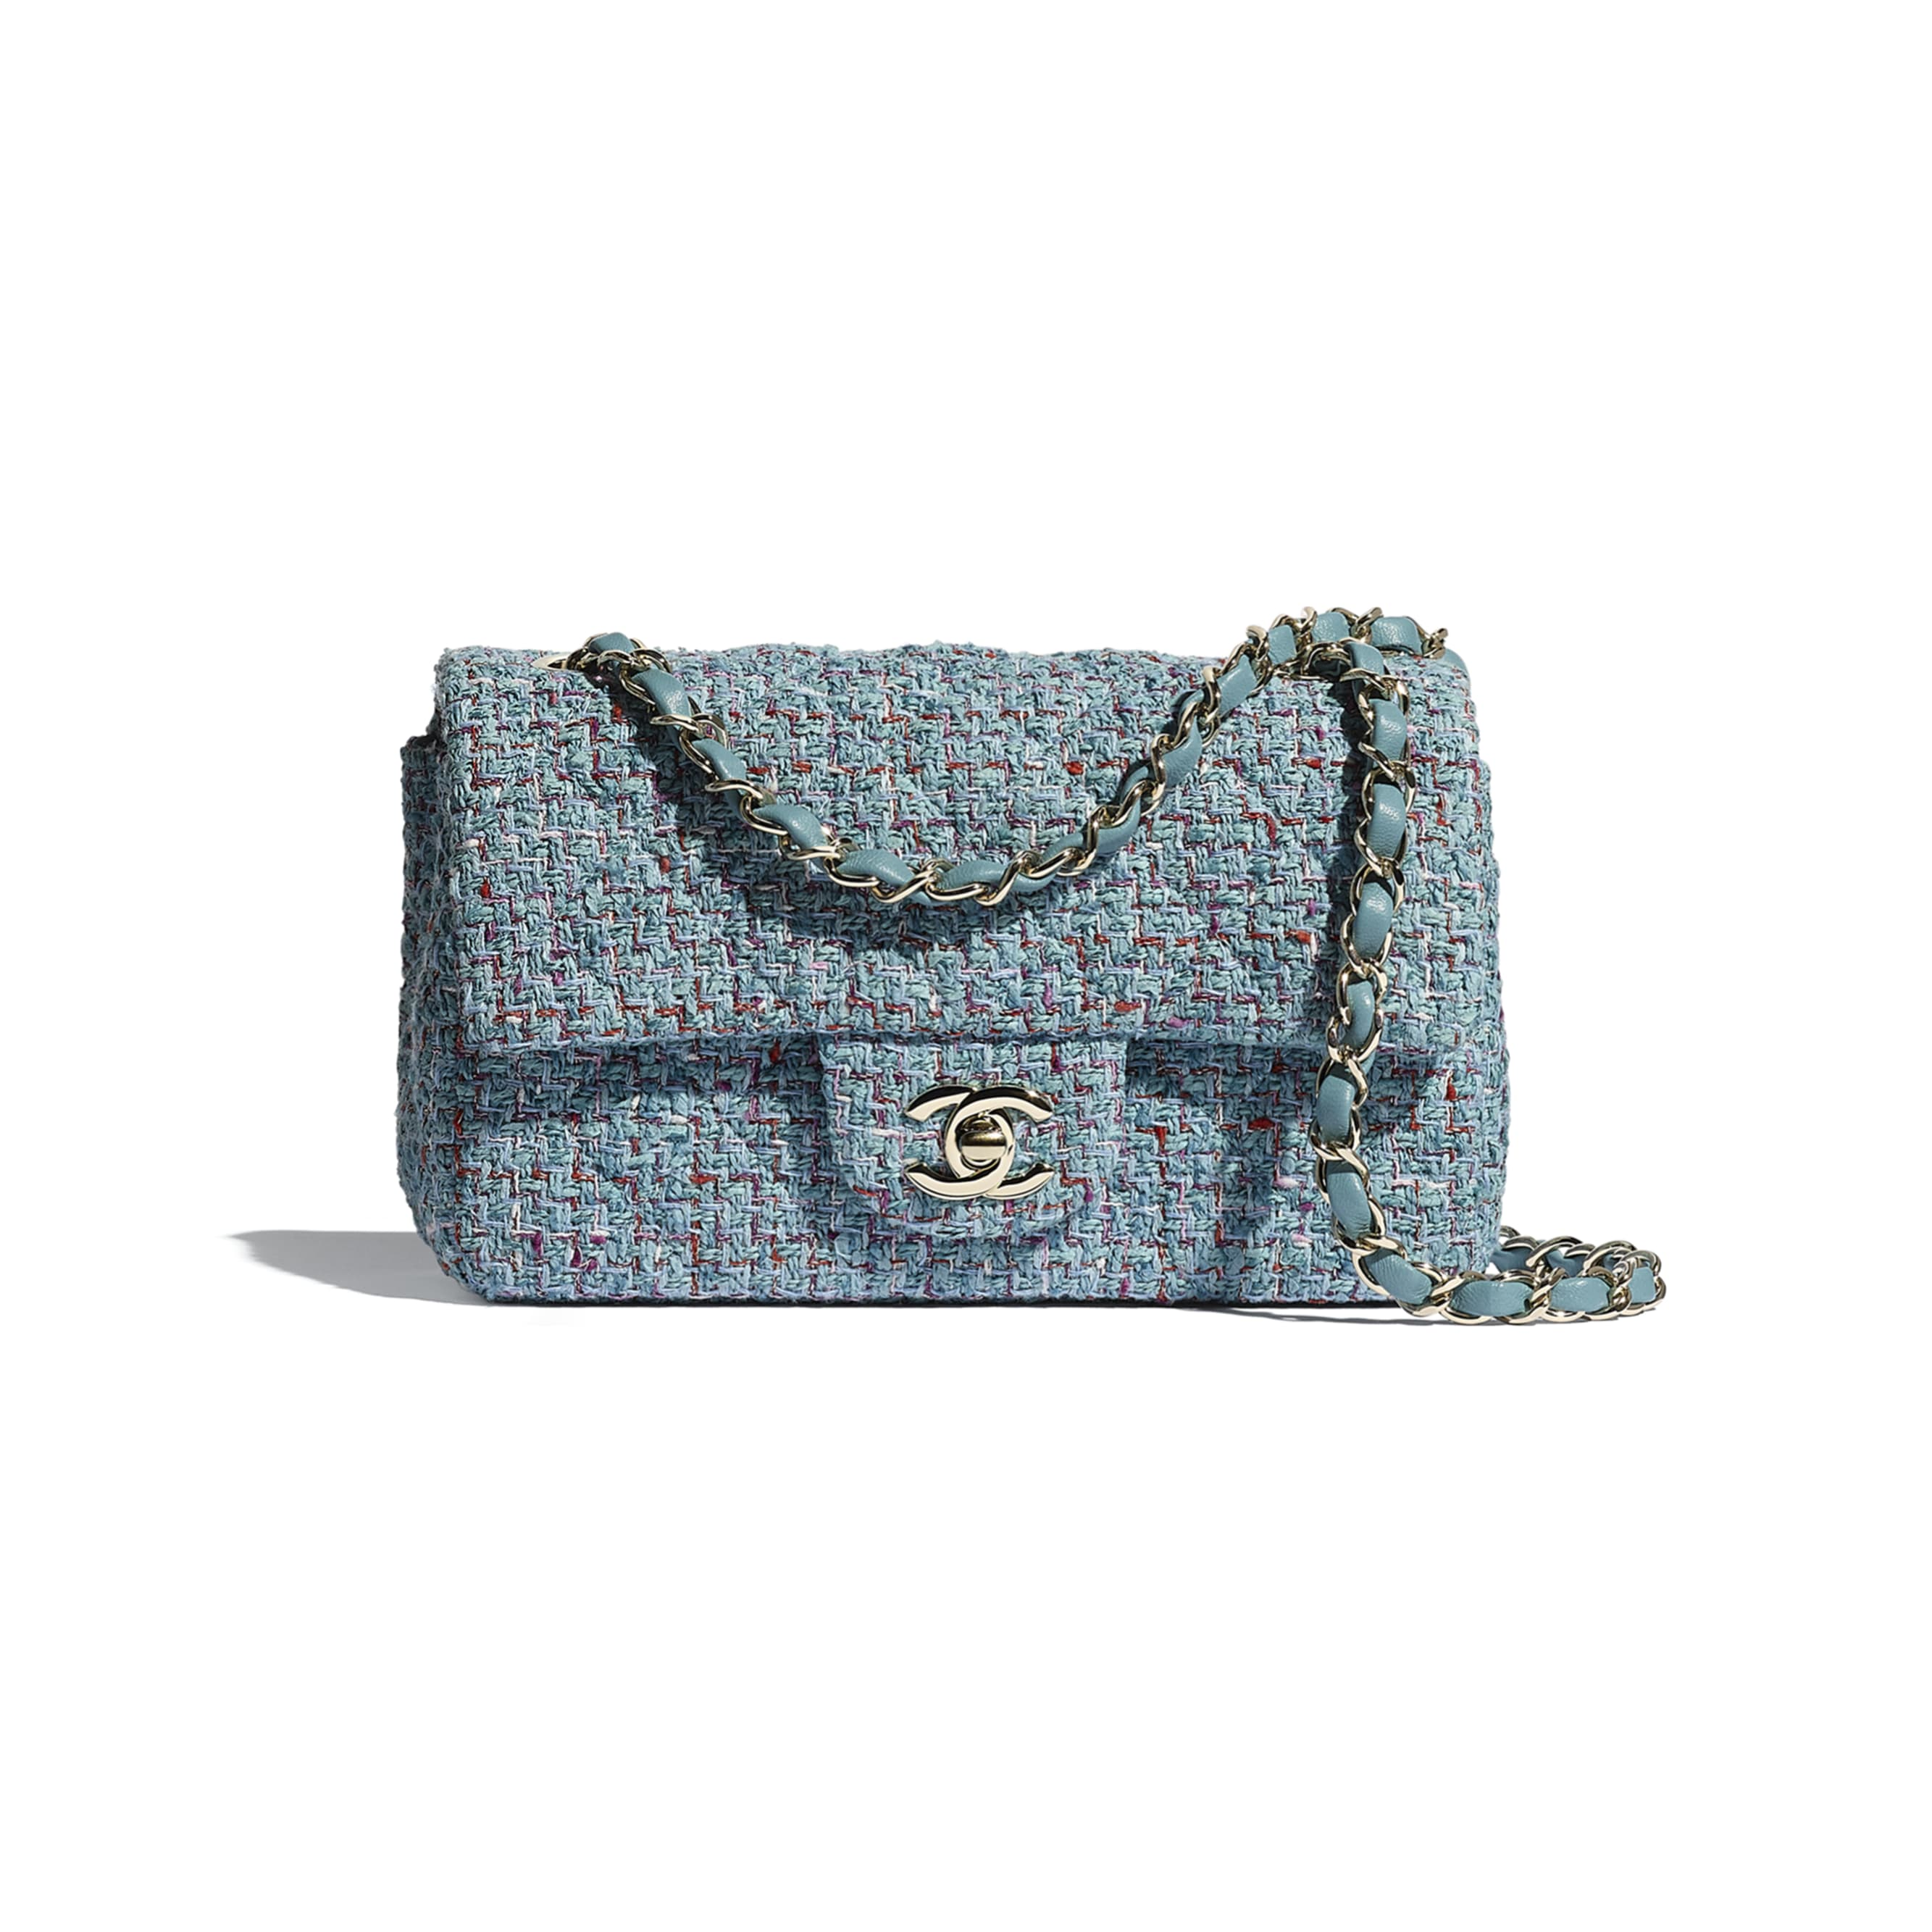 Mini Flap Bag - Turquoise, Purple, White & Red - Tweed & Gold Metal - CHANEL - Default view - see standard sized version